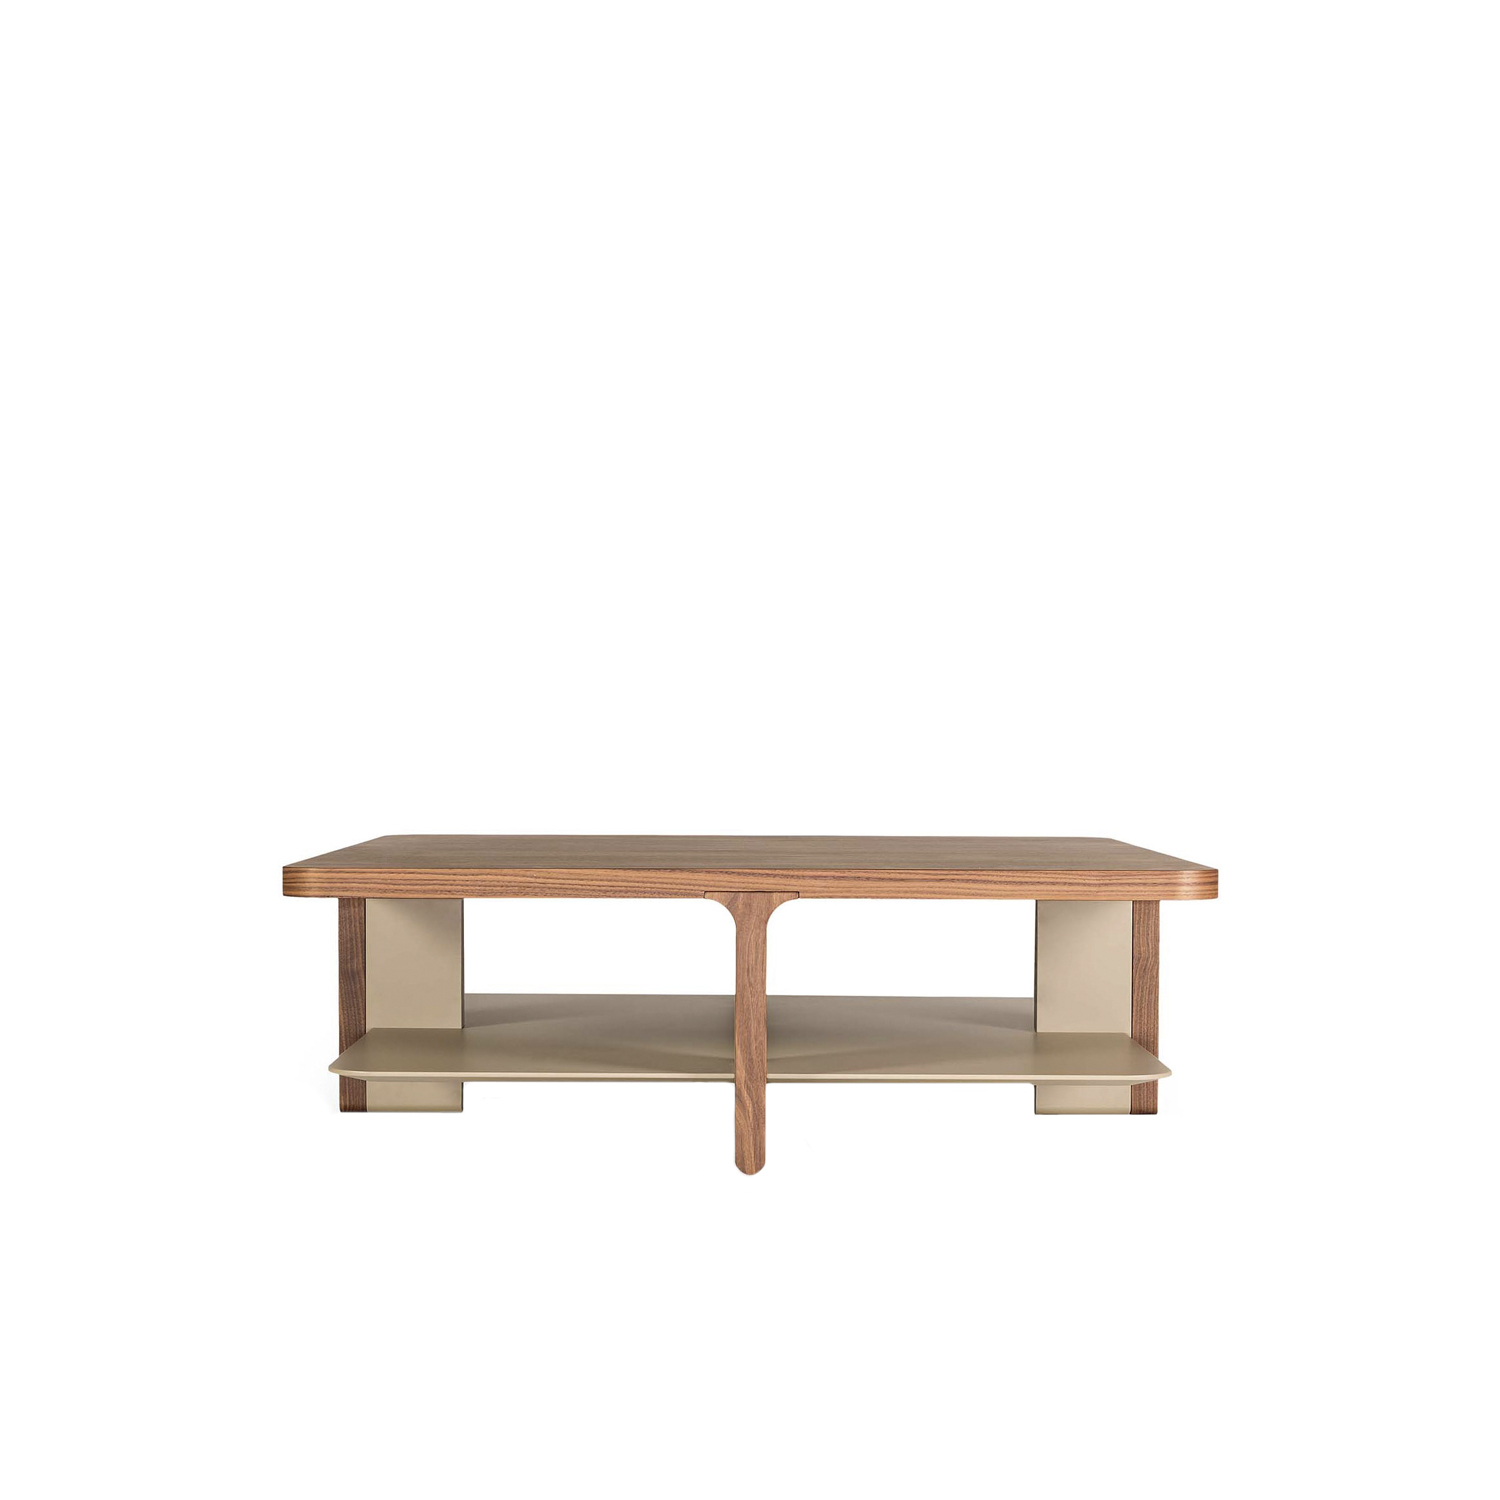 Acro-bat 006 Low Table - Low table in various sizes with round corners. Top in wood, base in two sections in wood and lacquer or total lacquered. Shaped magazine shelf always lacquered as a base.  | Matter of Stuff